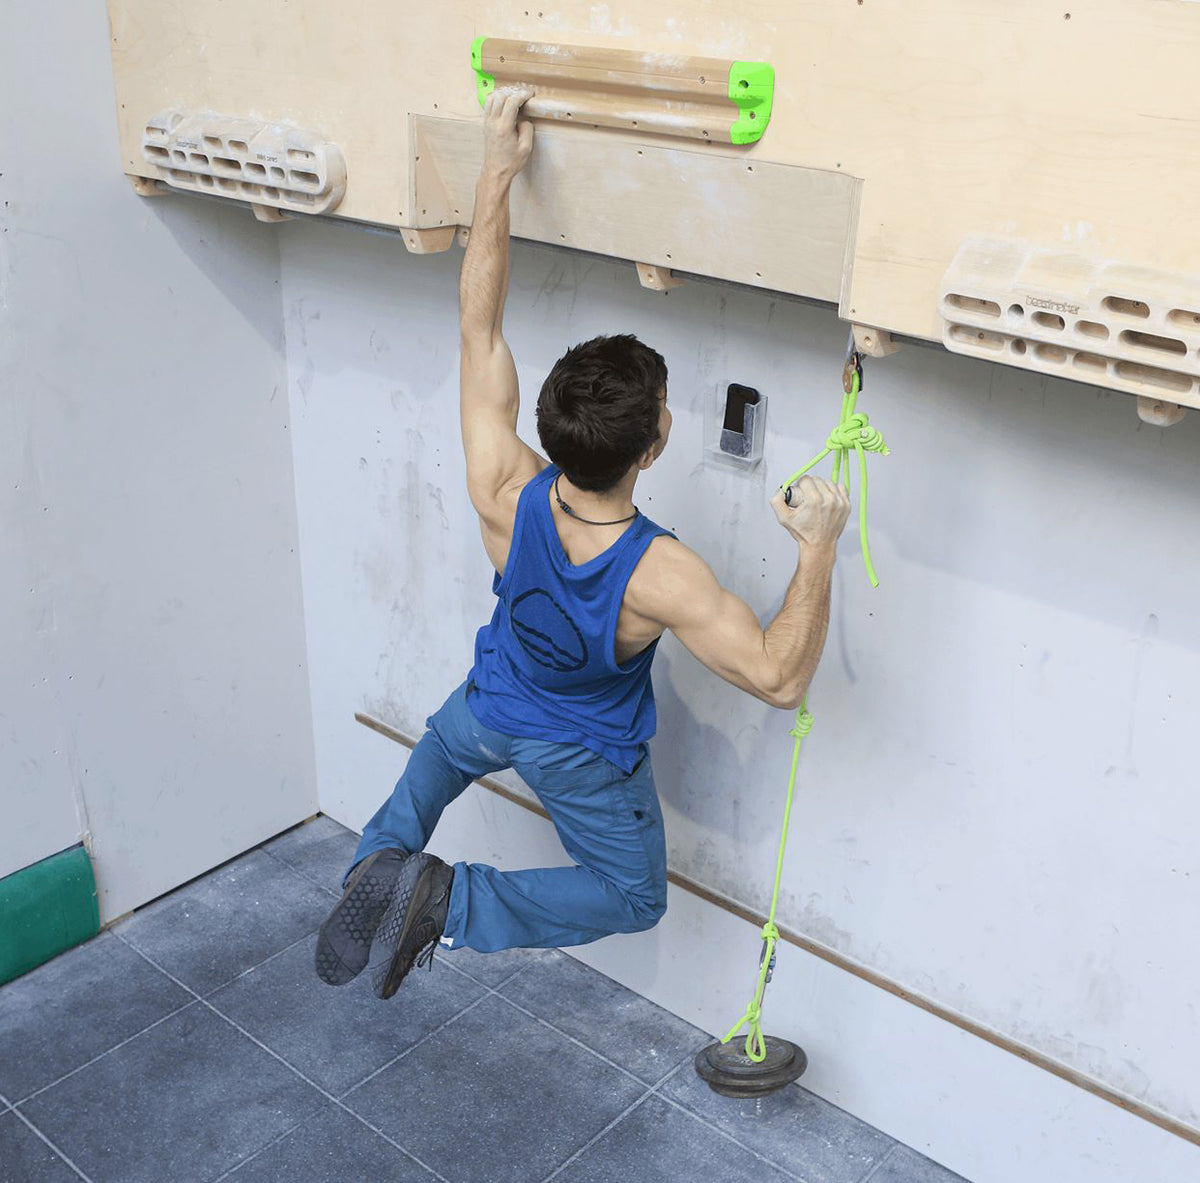 Lattice Testing and Training Rung, shown in use with a climber hanging off it